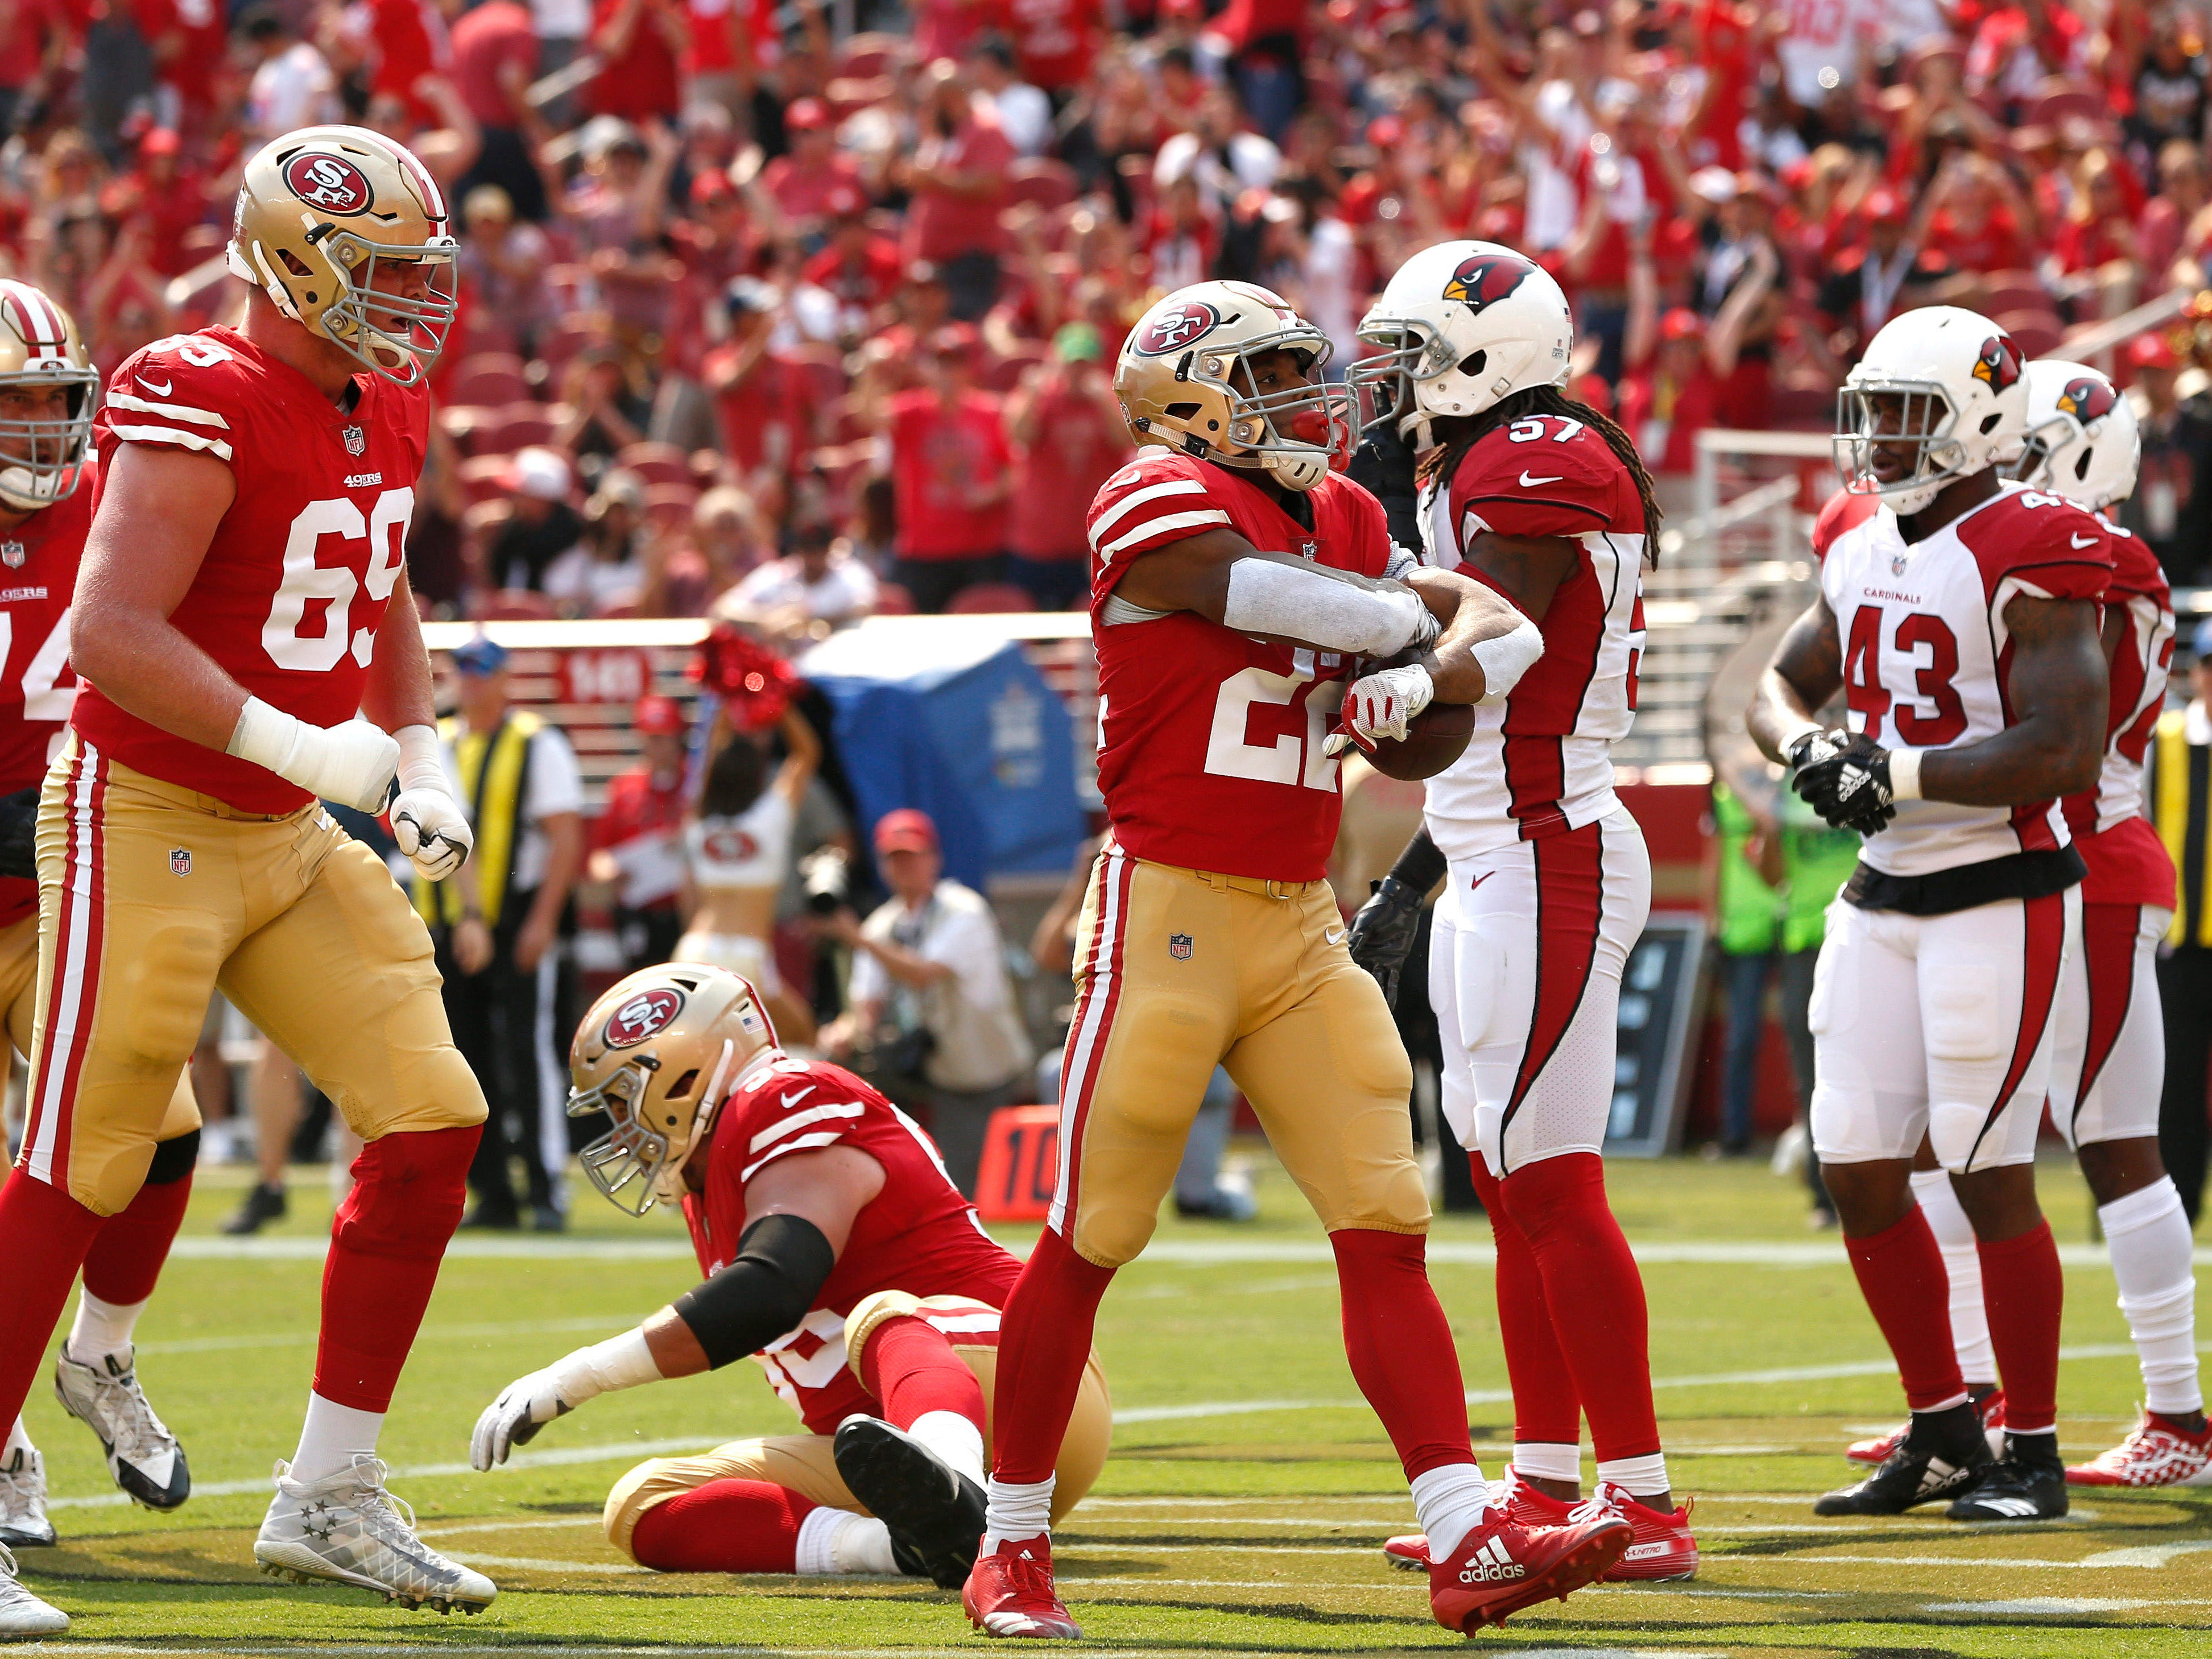 Oct 7, 2018; Santa Clara, CA, USA; San Francisco 49ers running back Matt Breida (22) reacts after scoring a touchdown against the Arizona Cardinals in the first quarter at Levi's Stadium.